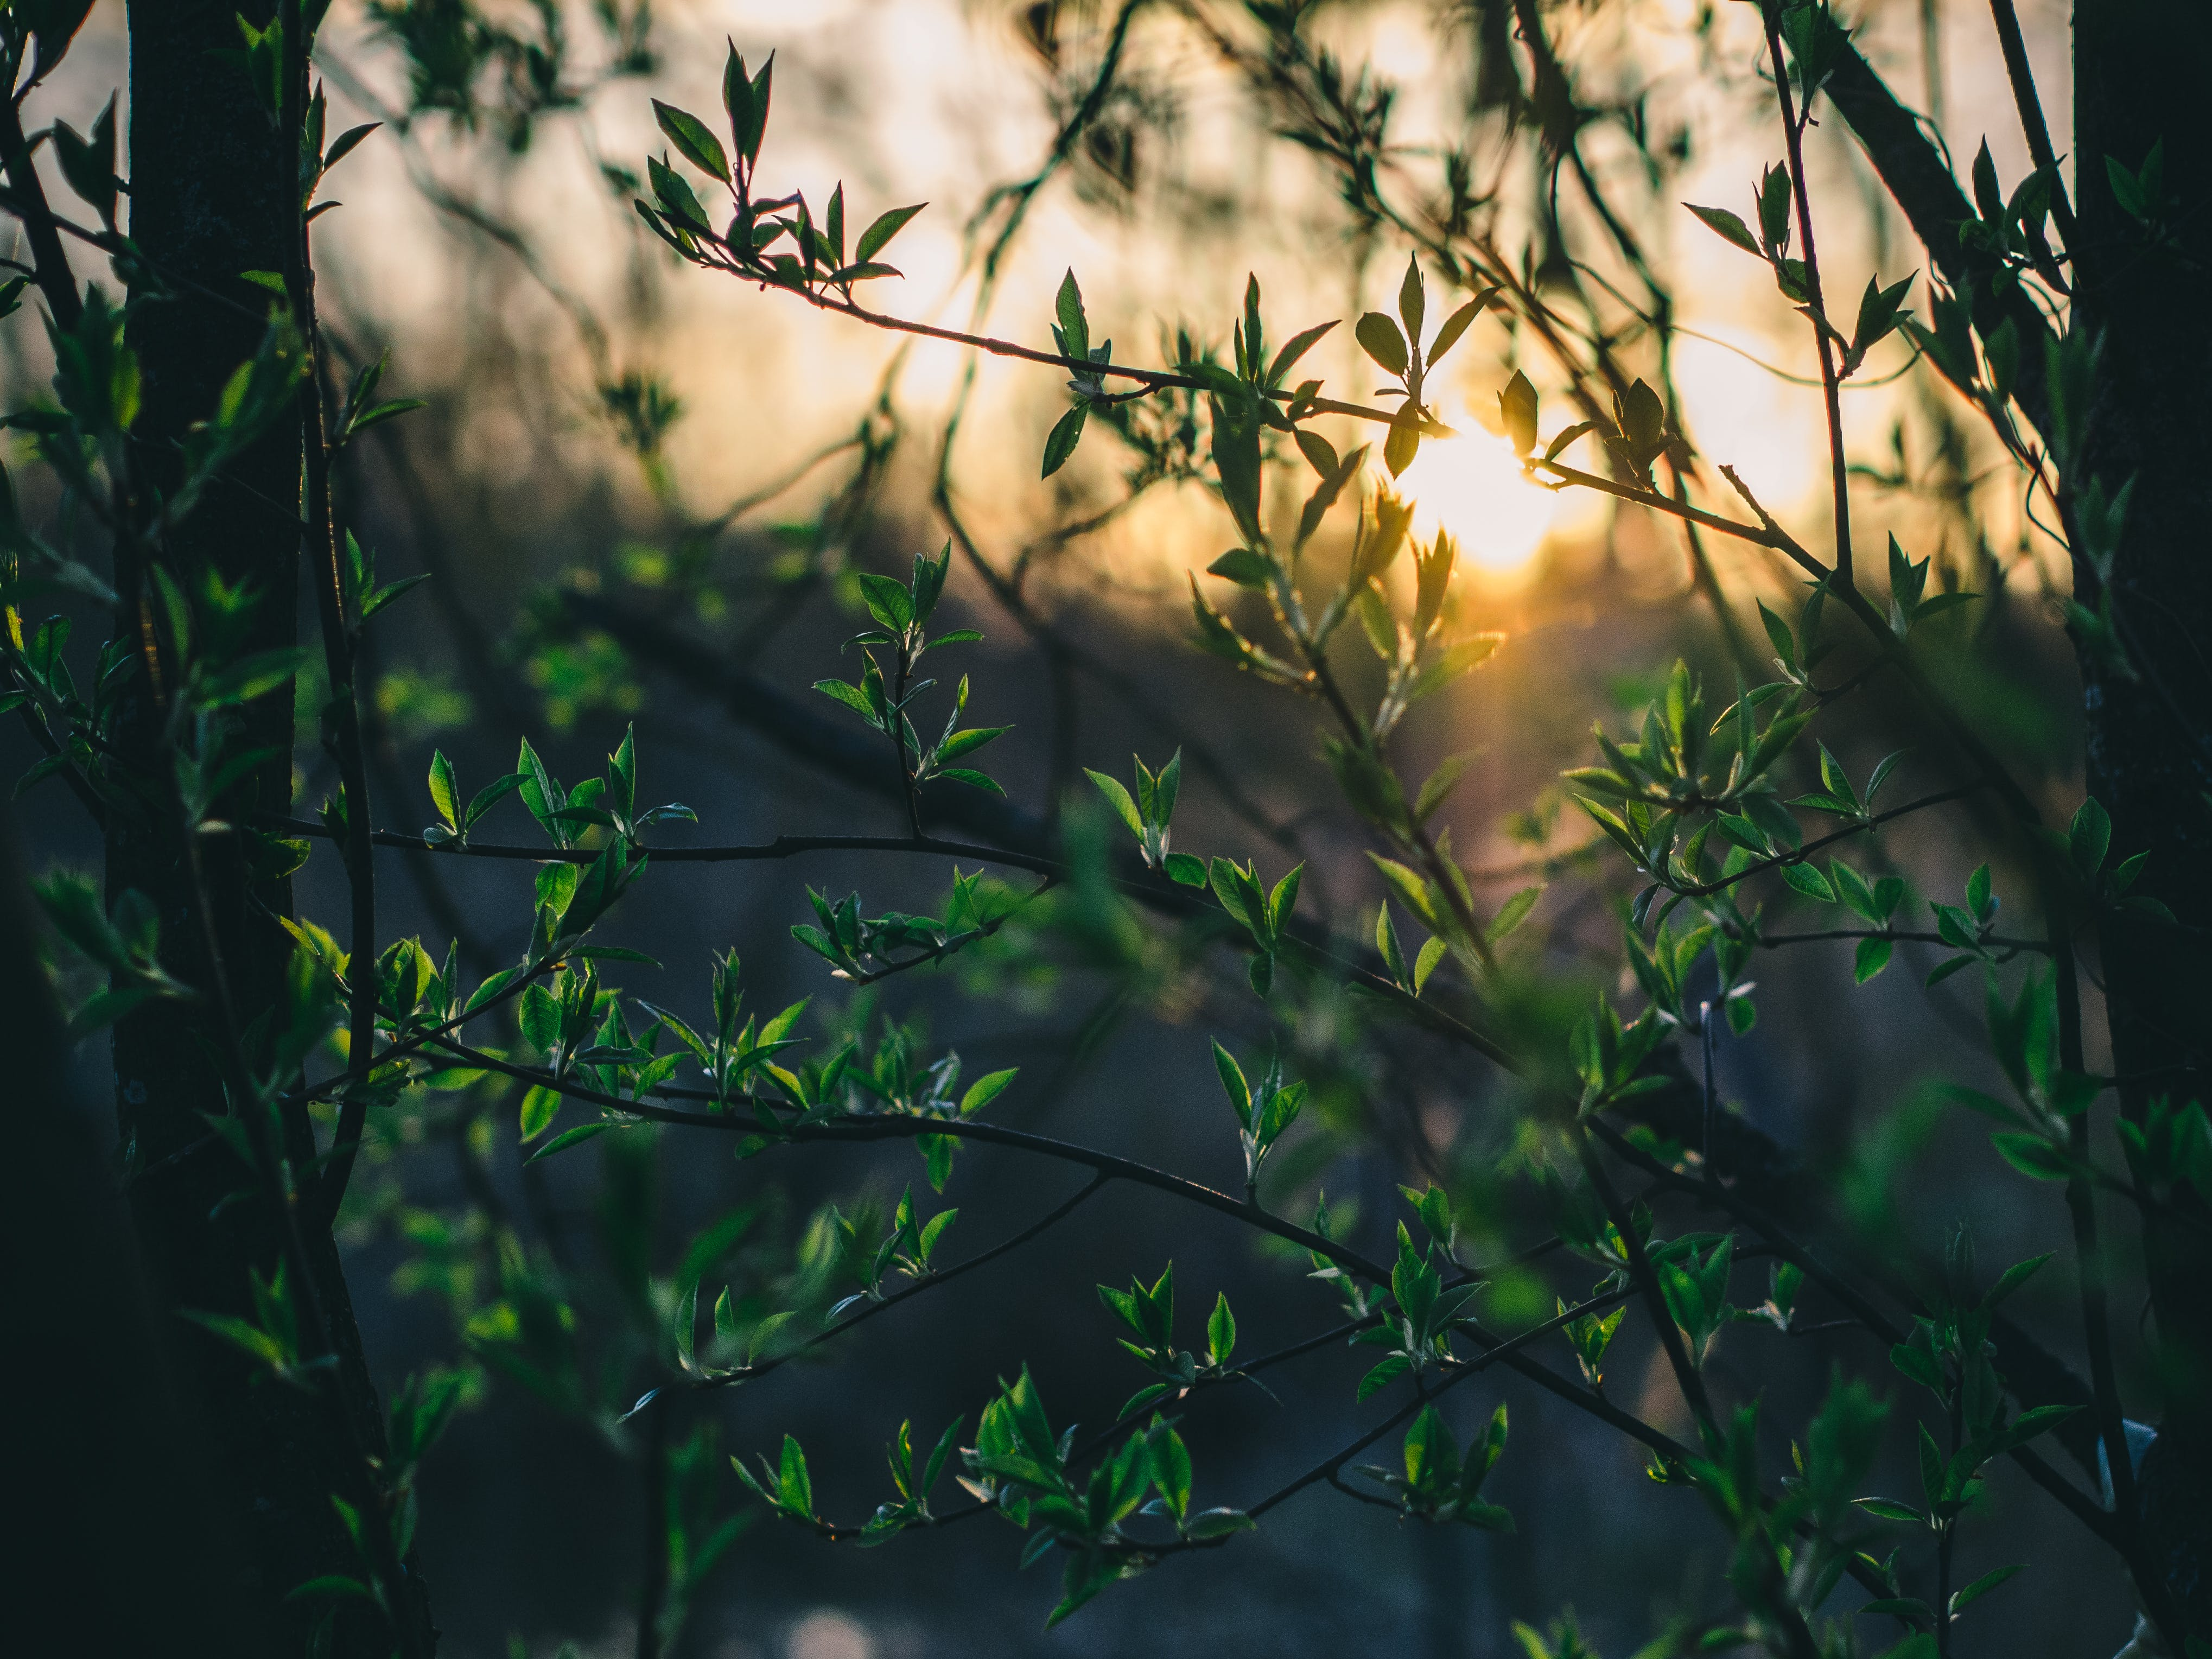 Silhouette Photography of Green Leafed Plant